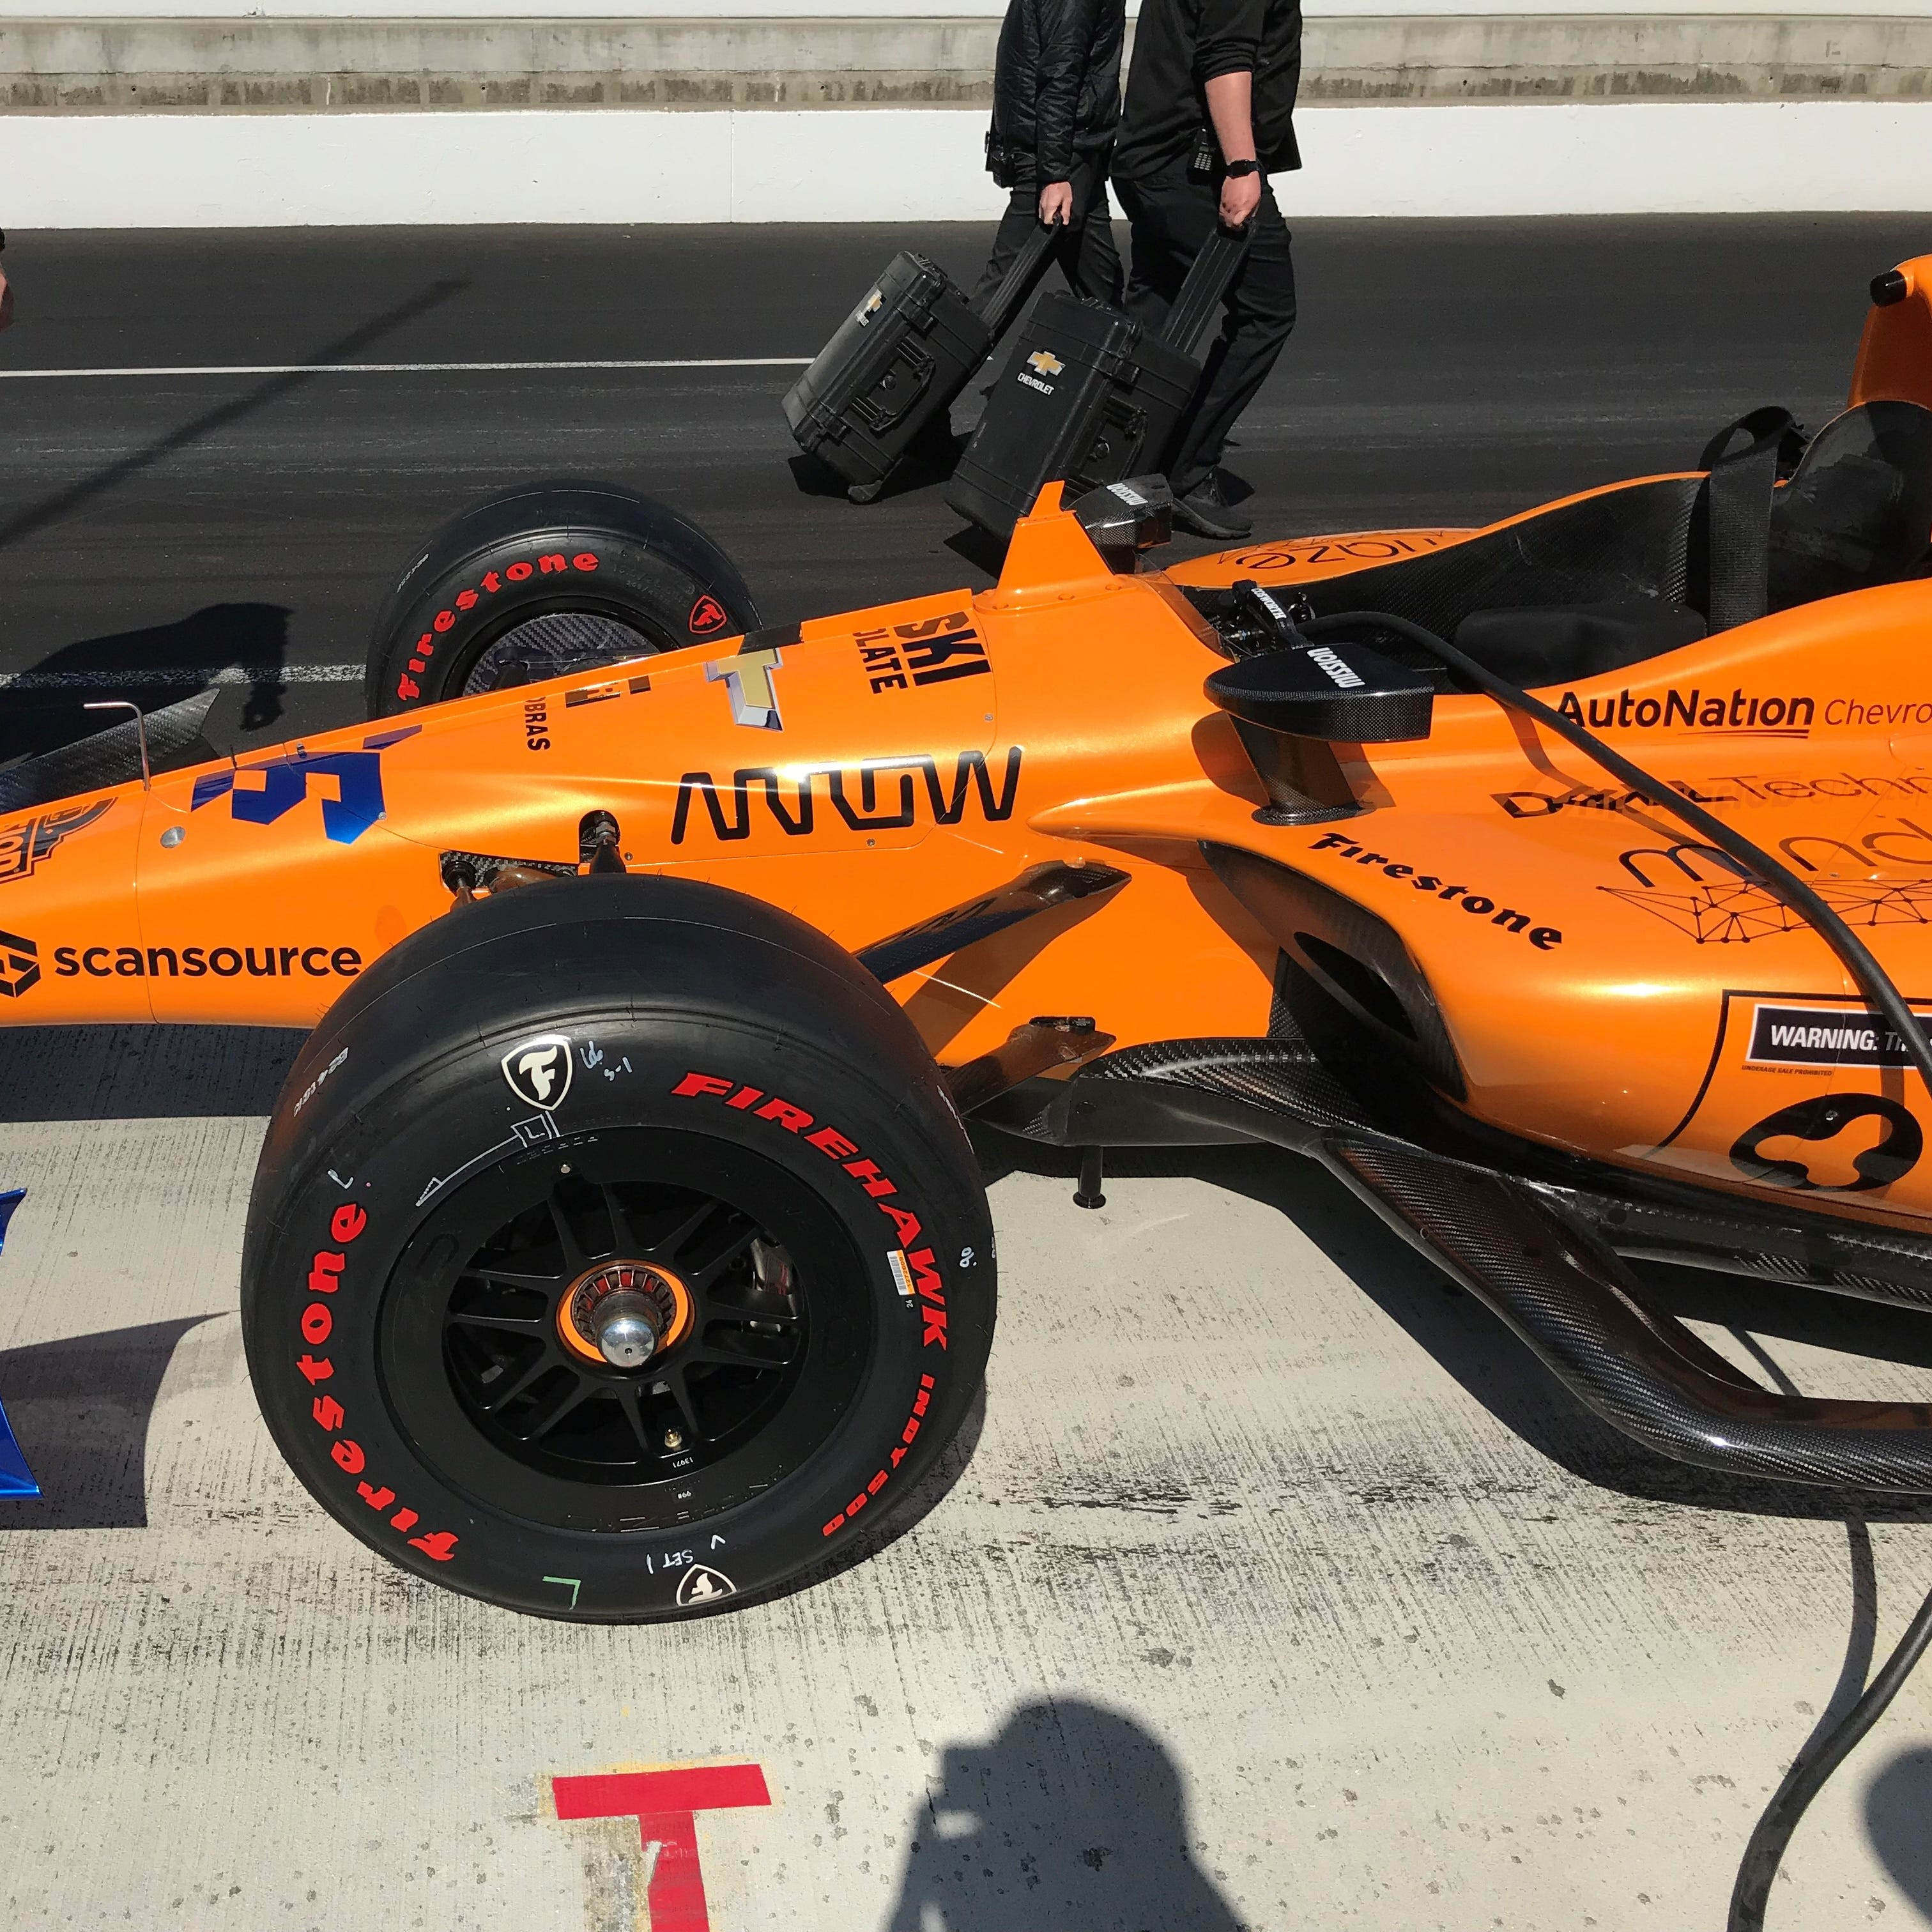 McLaren Indy's No. 66 Chevrolet  features Arrow Electronics as one of its sponsors.